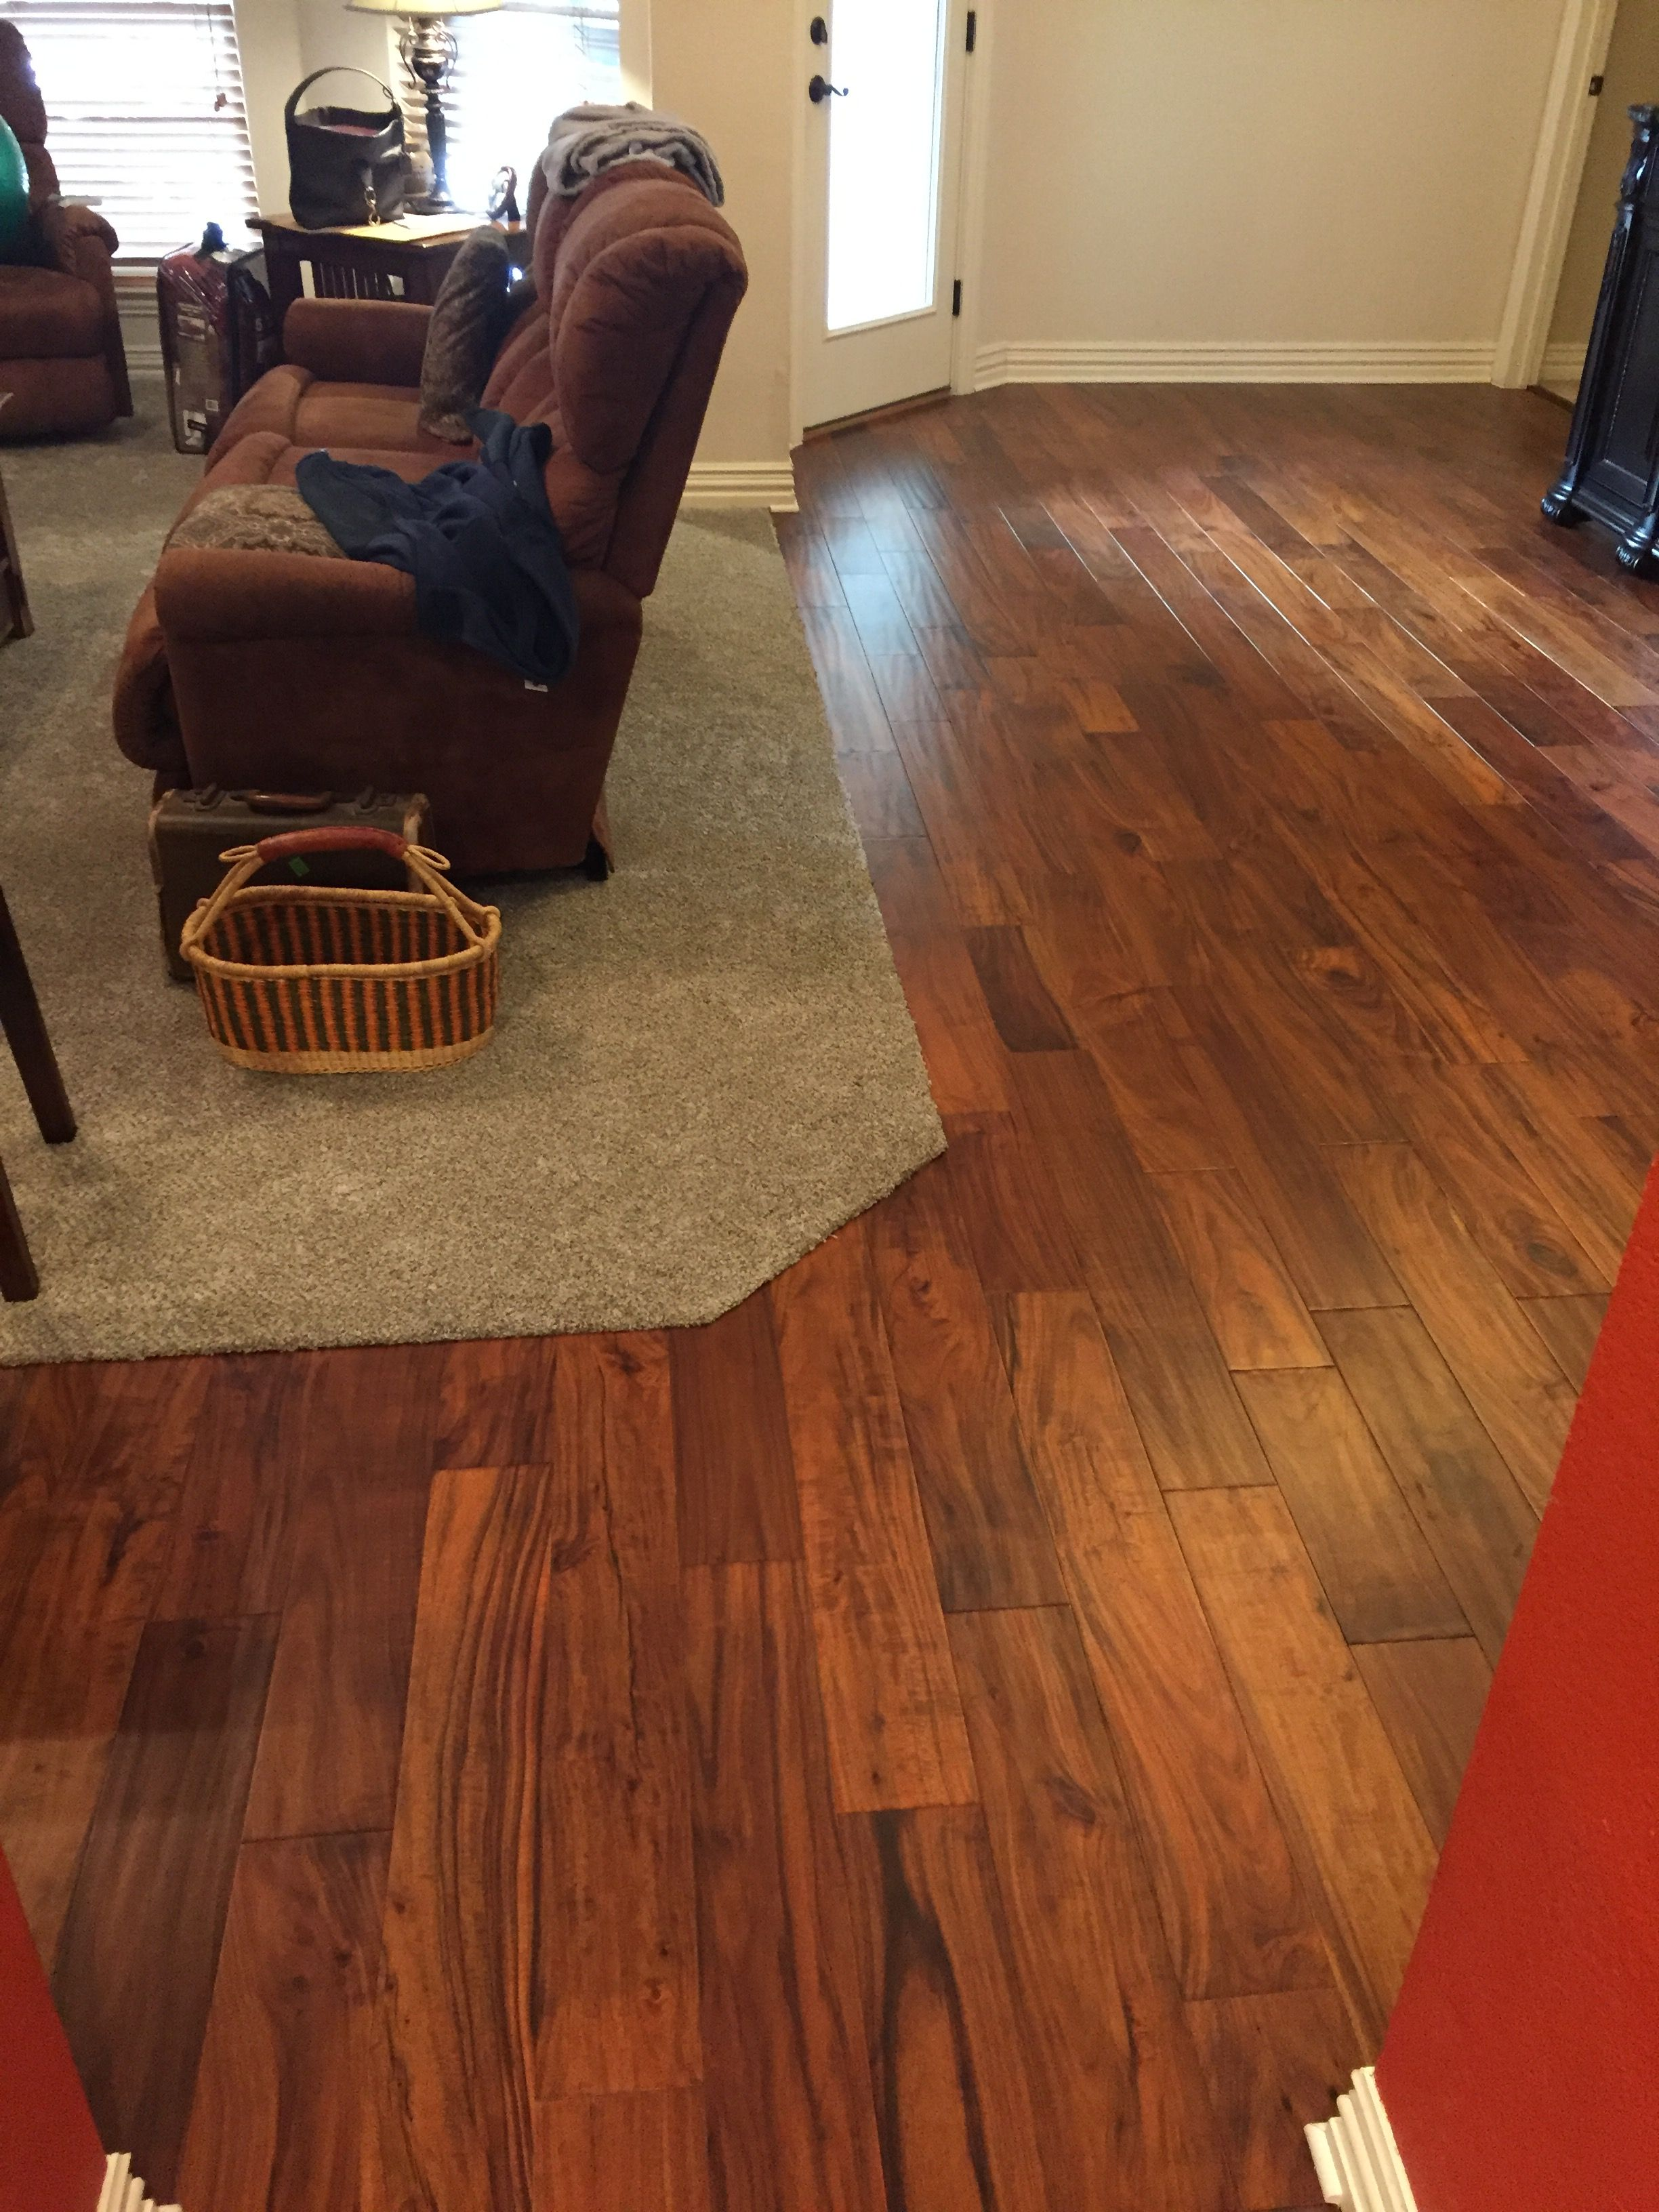 Acacia Wood Floor With Carpet Inset